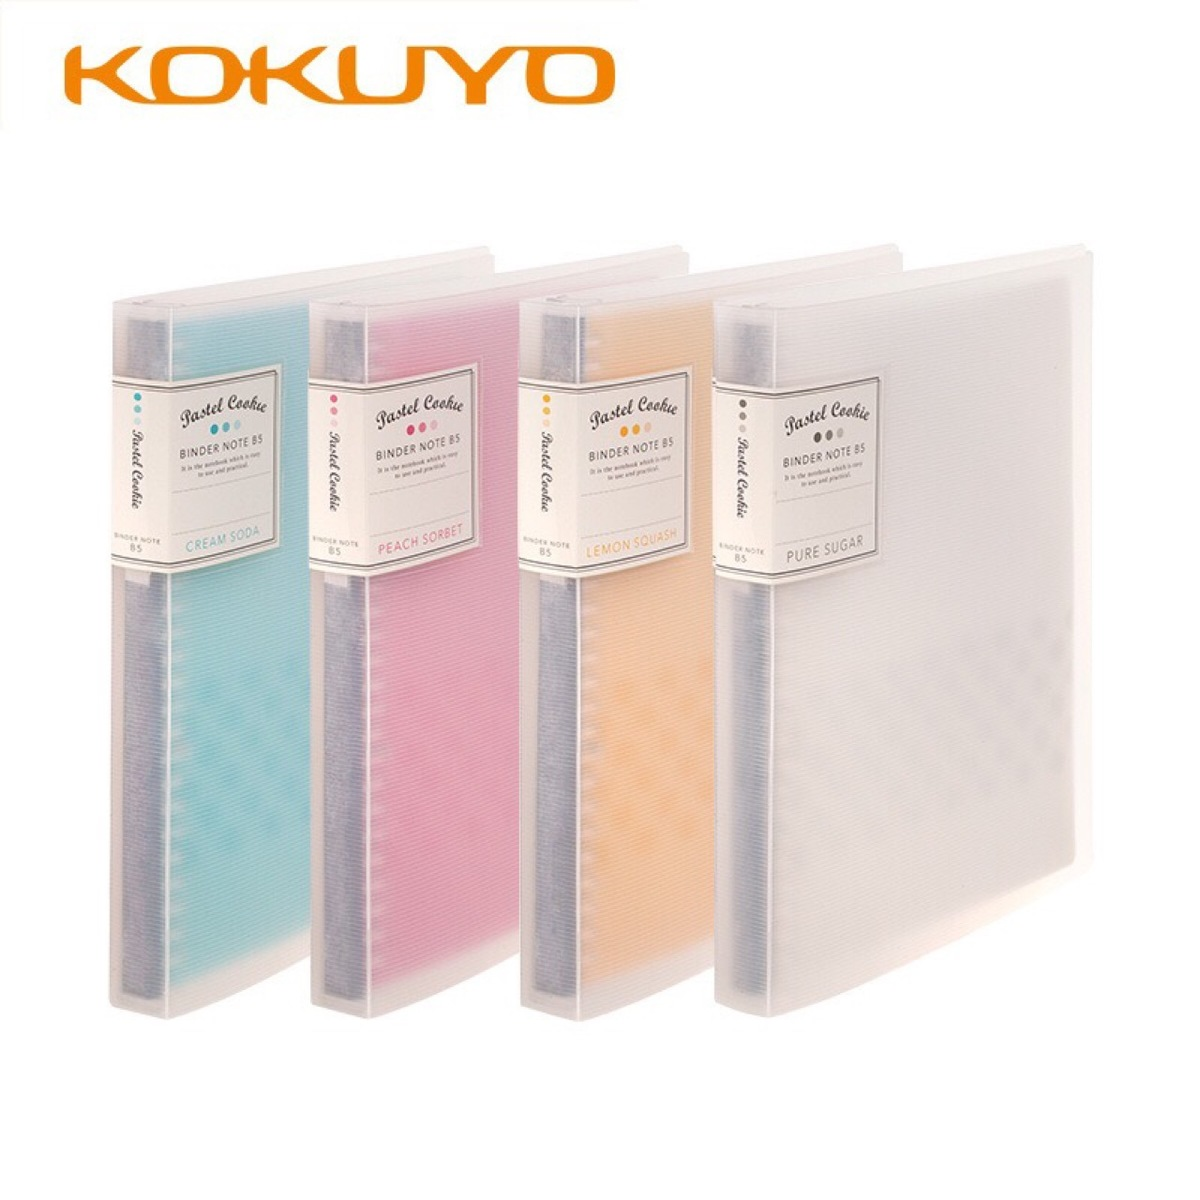 KOKUYO A5 B5 Removable Loose Leaf Notebook Refill Spiral Binder Planner Inner Page Inside Paper Dairy Weekly Monthly Plan Line health care heating jade cushion natural tourmaline mat physical therapy mat heated jade mattress high quality made in china